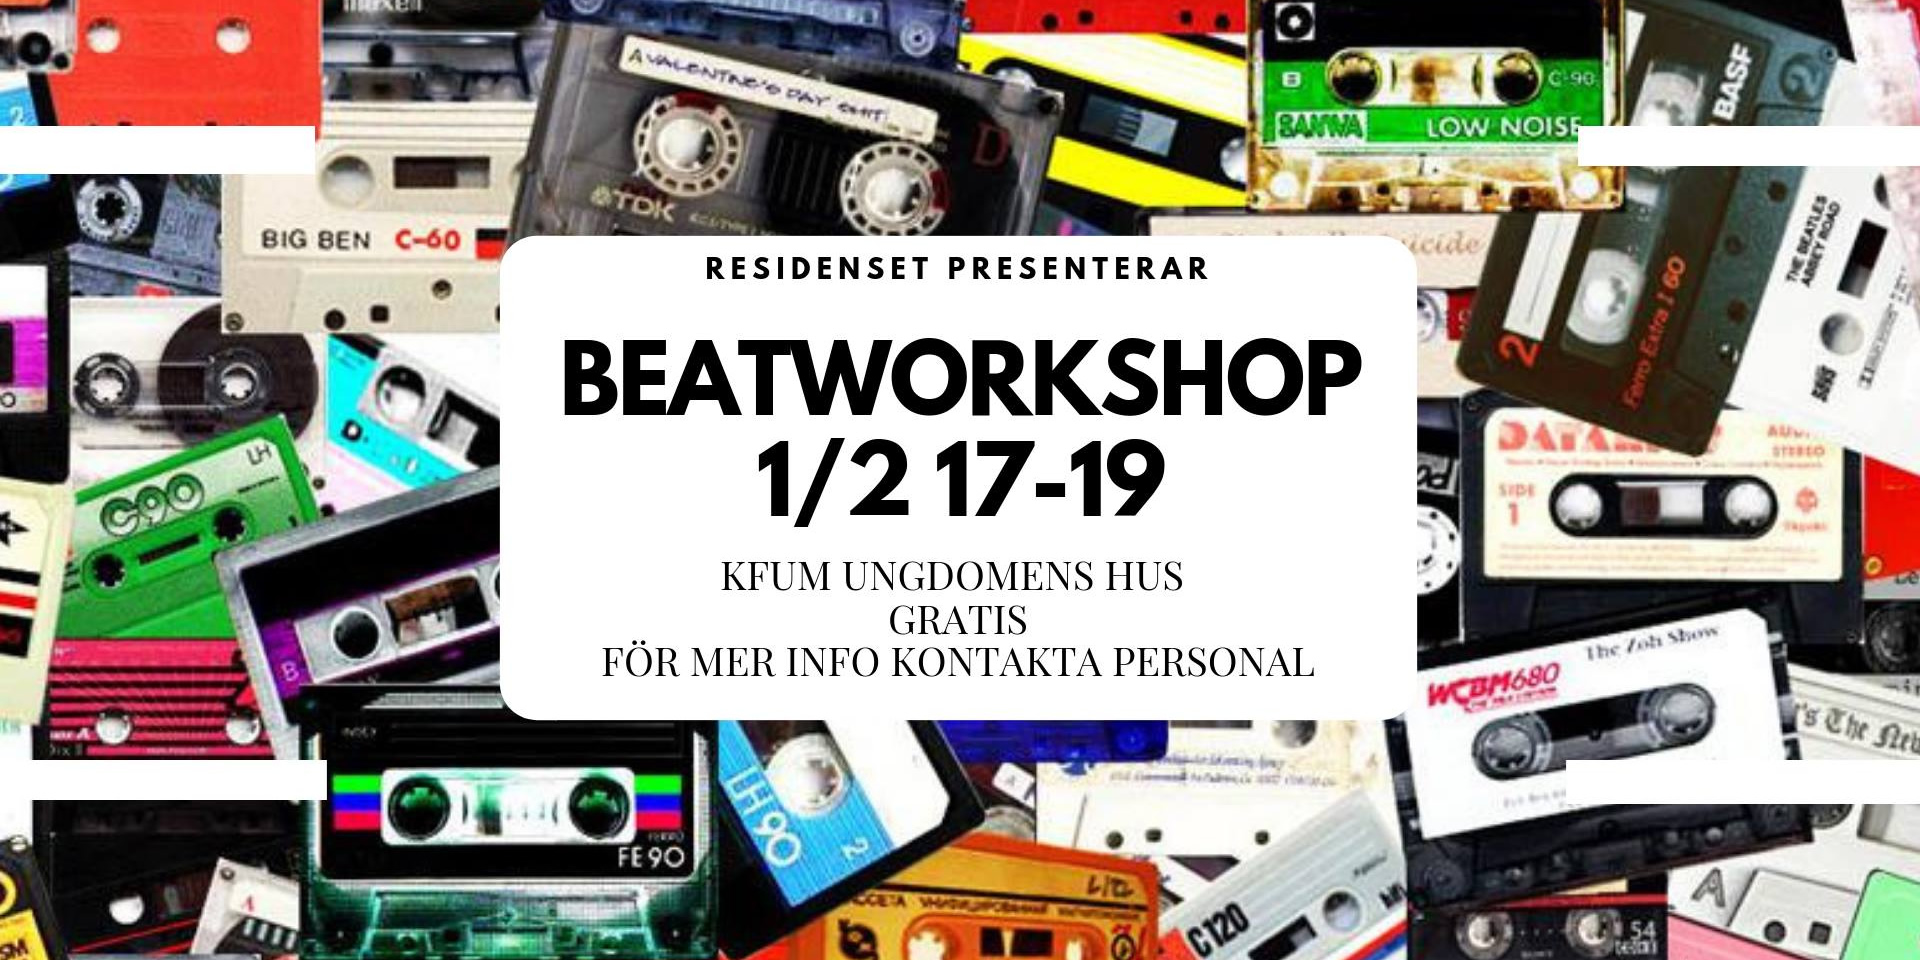 Beatworkshop 1/2